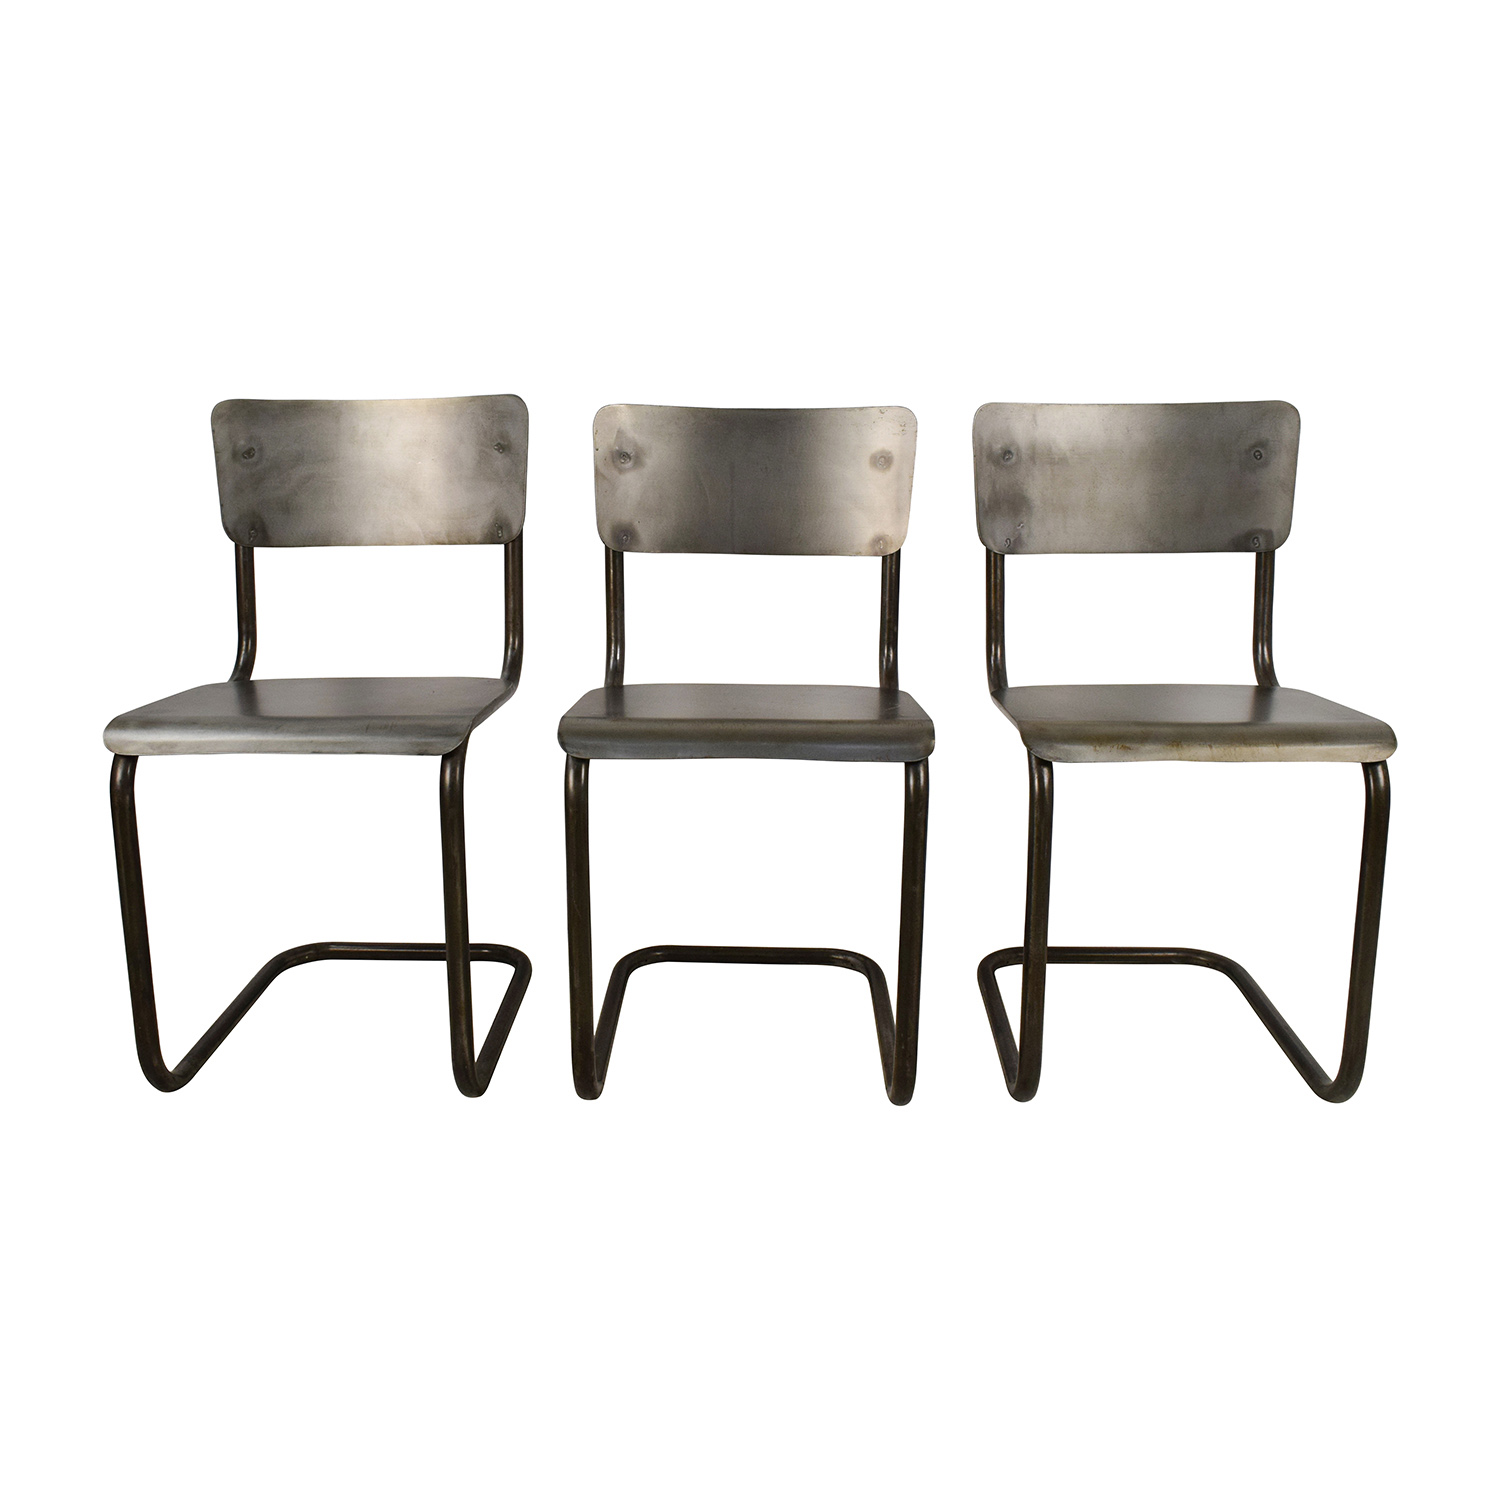 Industrial Style Metal Chair Set / Dining Chairs